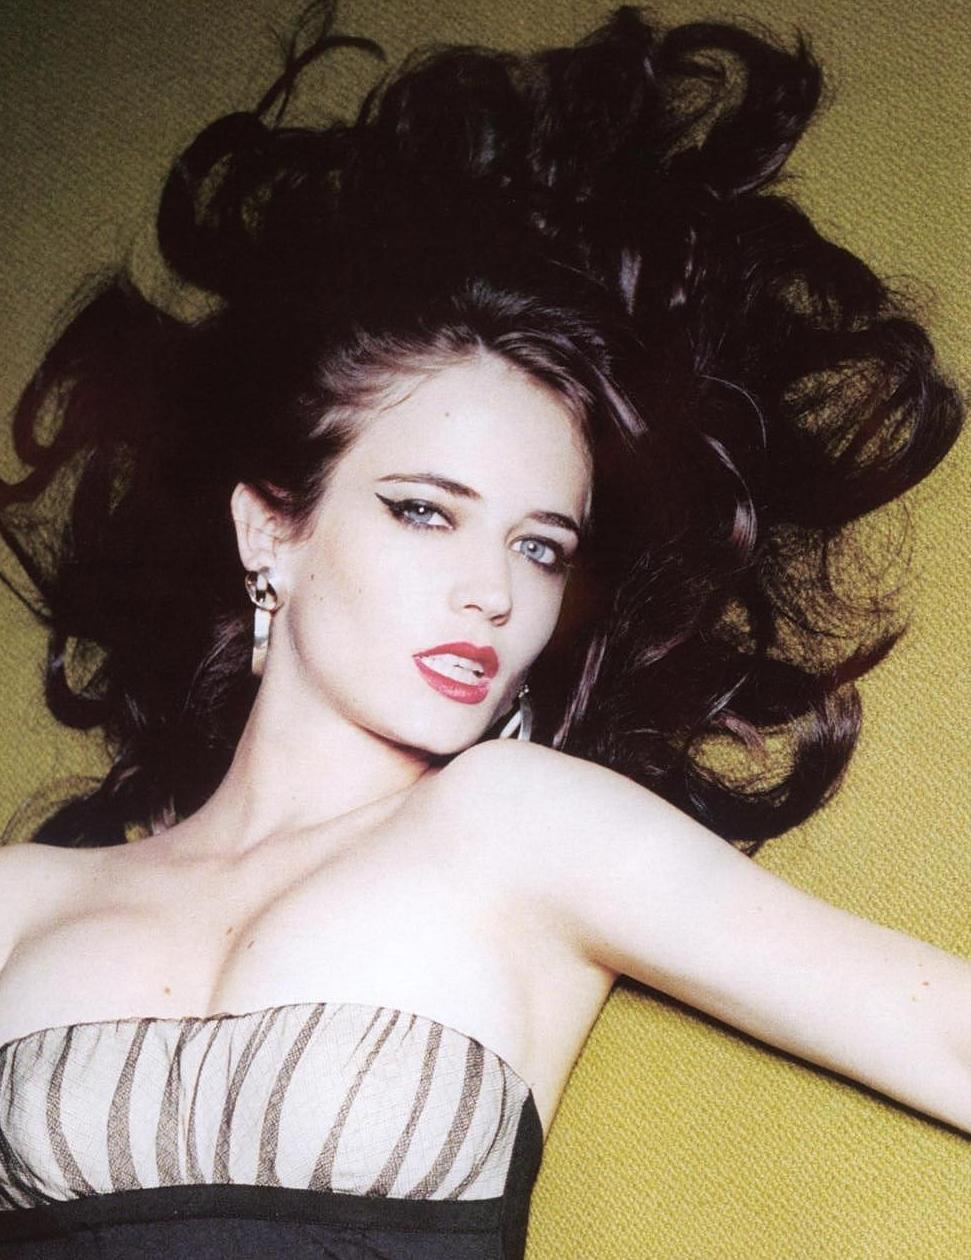 Eva Green shot by Ellen von Unwerth for Arena UK, 12/06